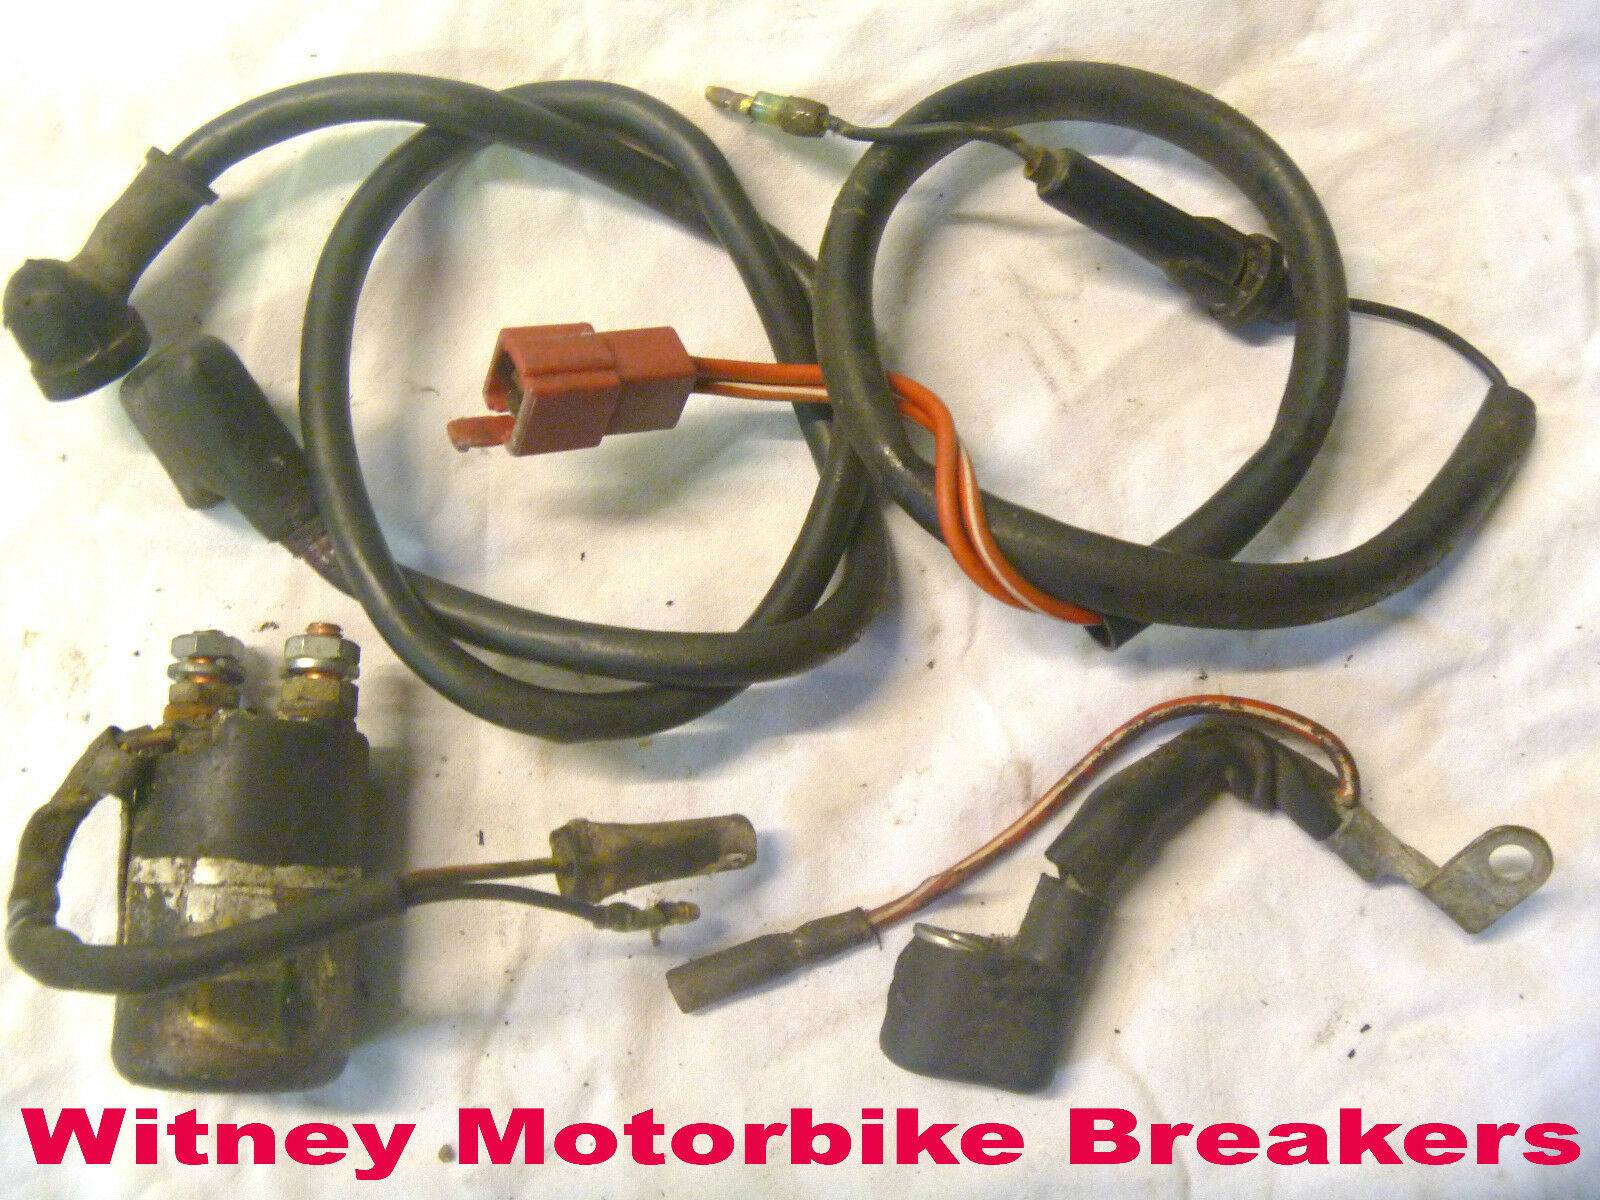 Honda Starter Solenoid Relay Wires Cables Cbx550 Cbx550f Cbx 550 F 82 Wiring 500 1 Of 4only Available